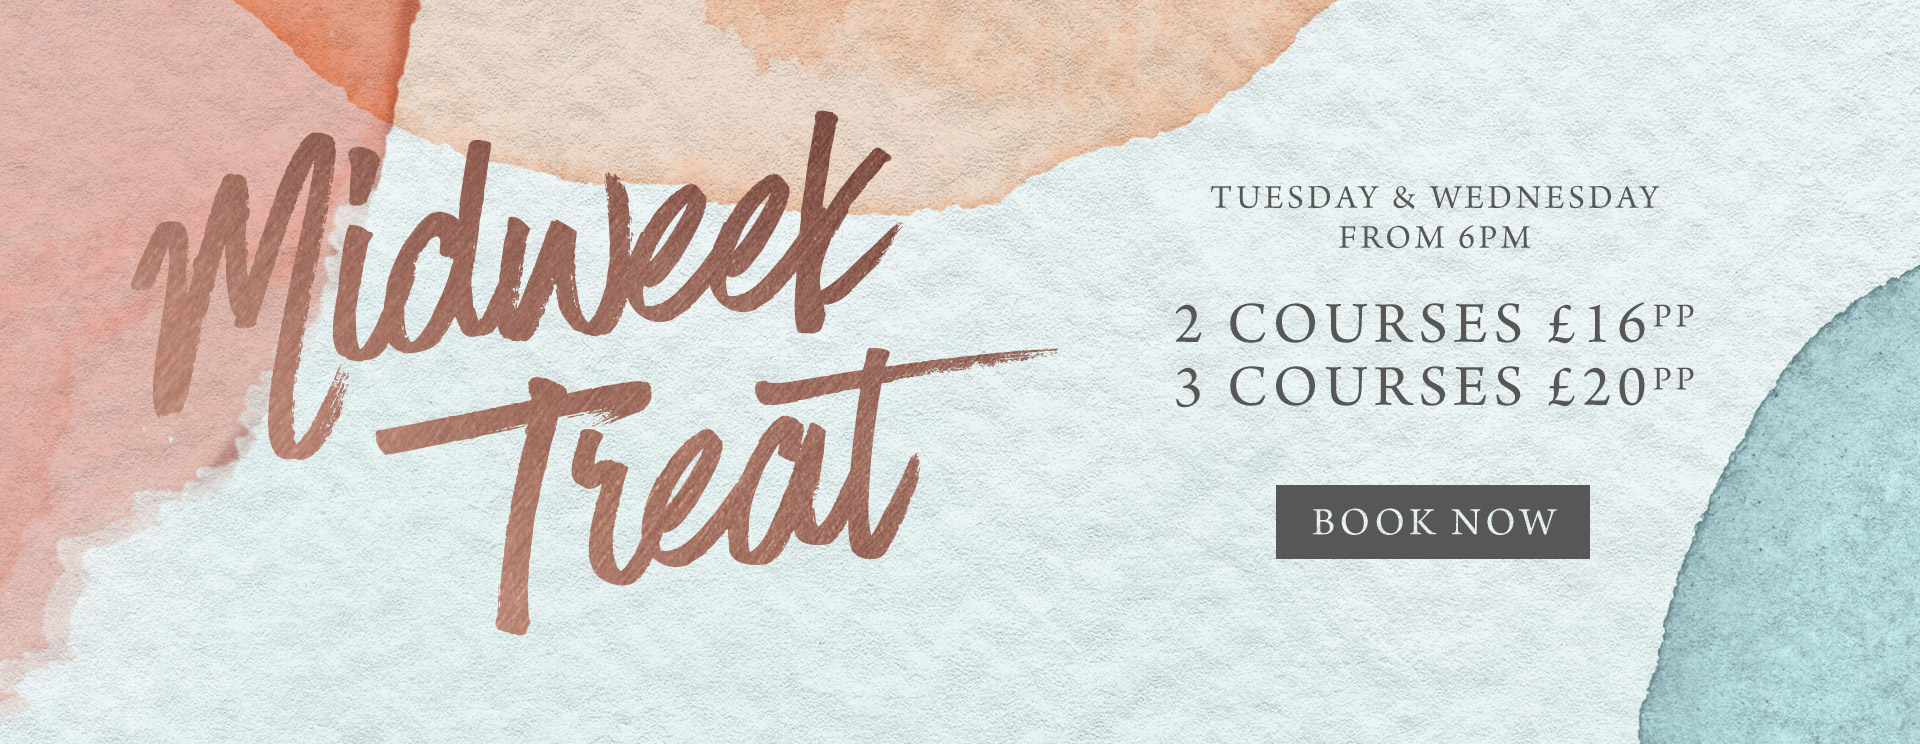 Midweek treat at The Merlin - Book now